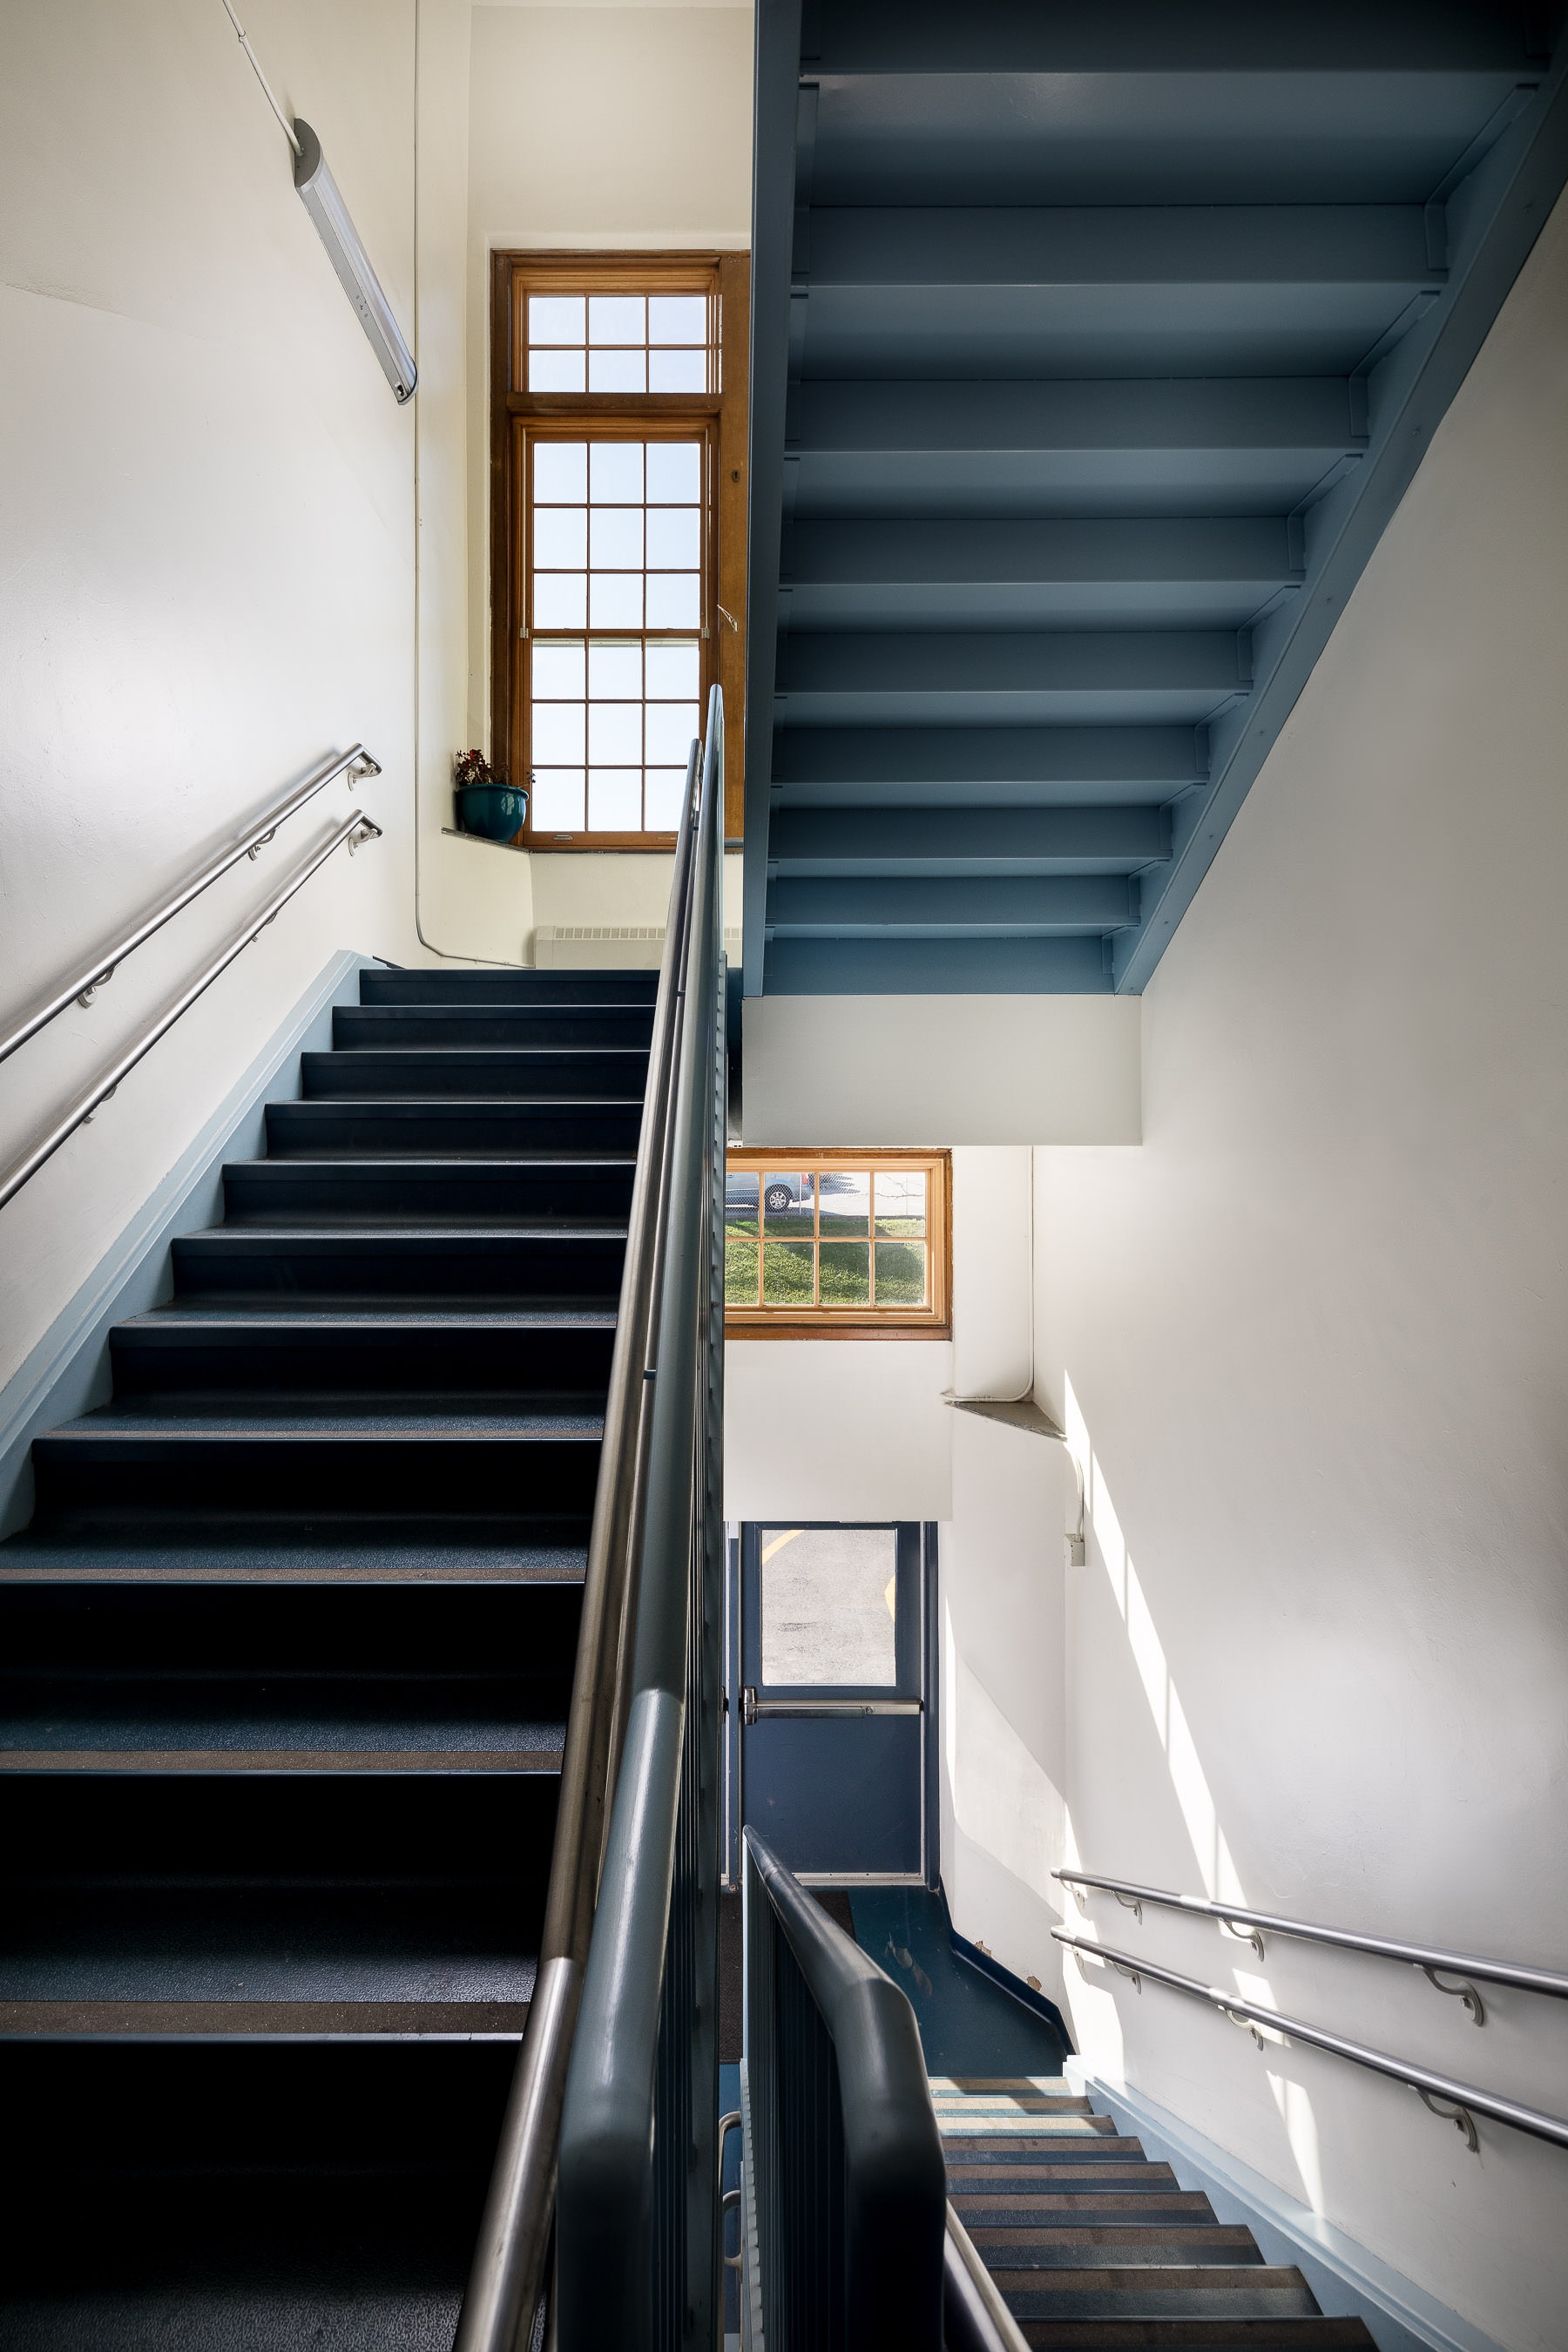 A renovated stairwell in Edmunds Elementary School in Burlington completed by Neagley & Chase Construction and photographed by Stina Booth Vermont commercial photography